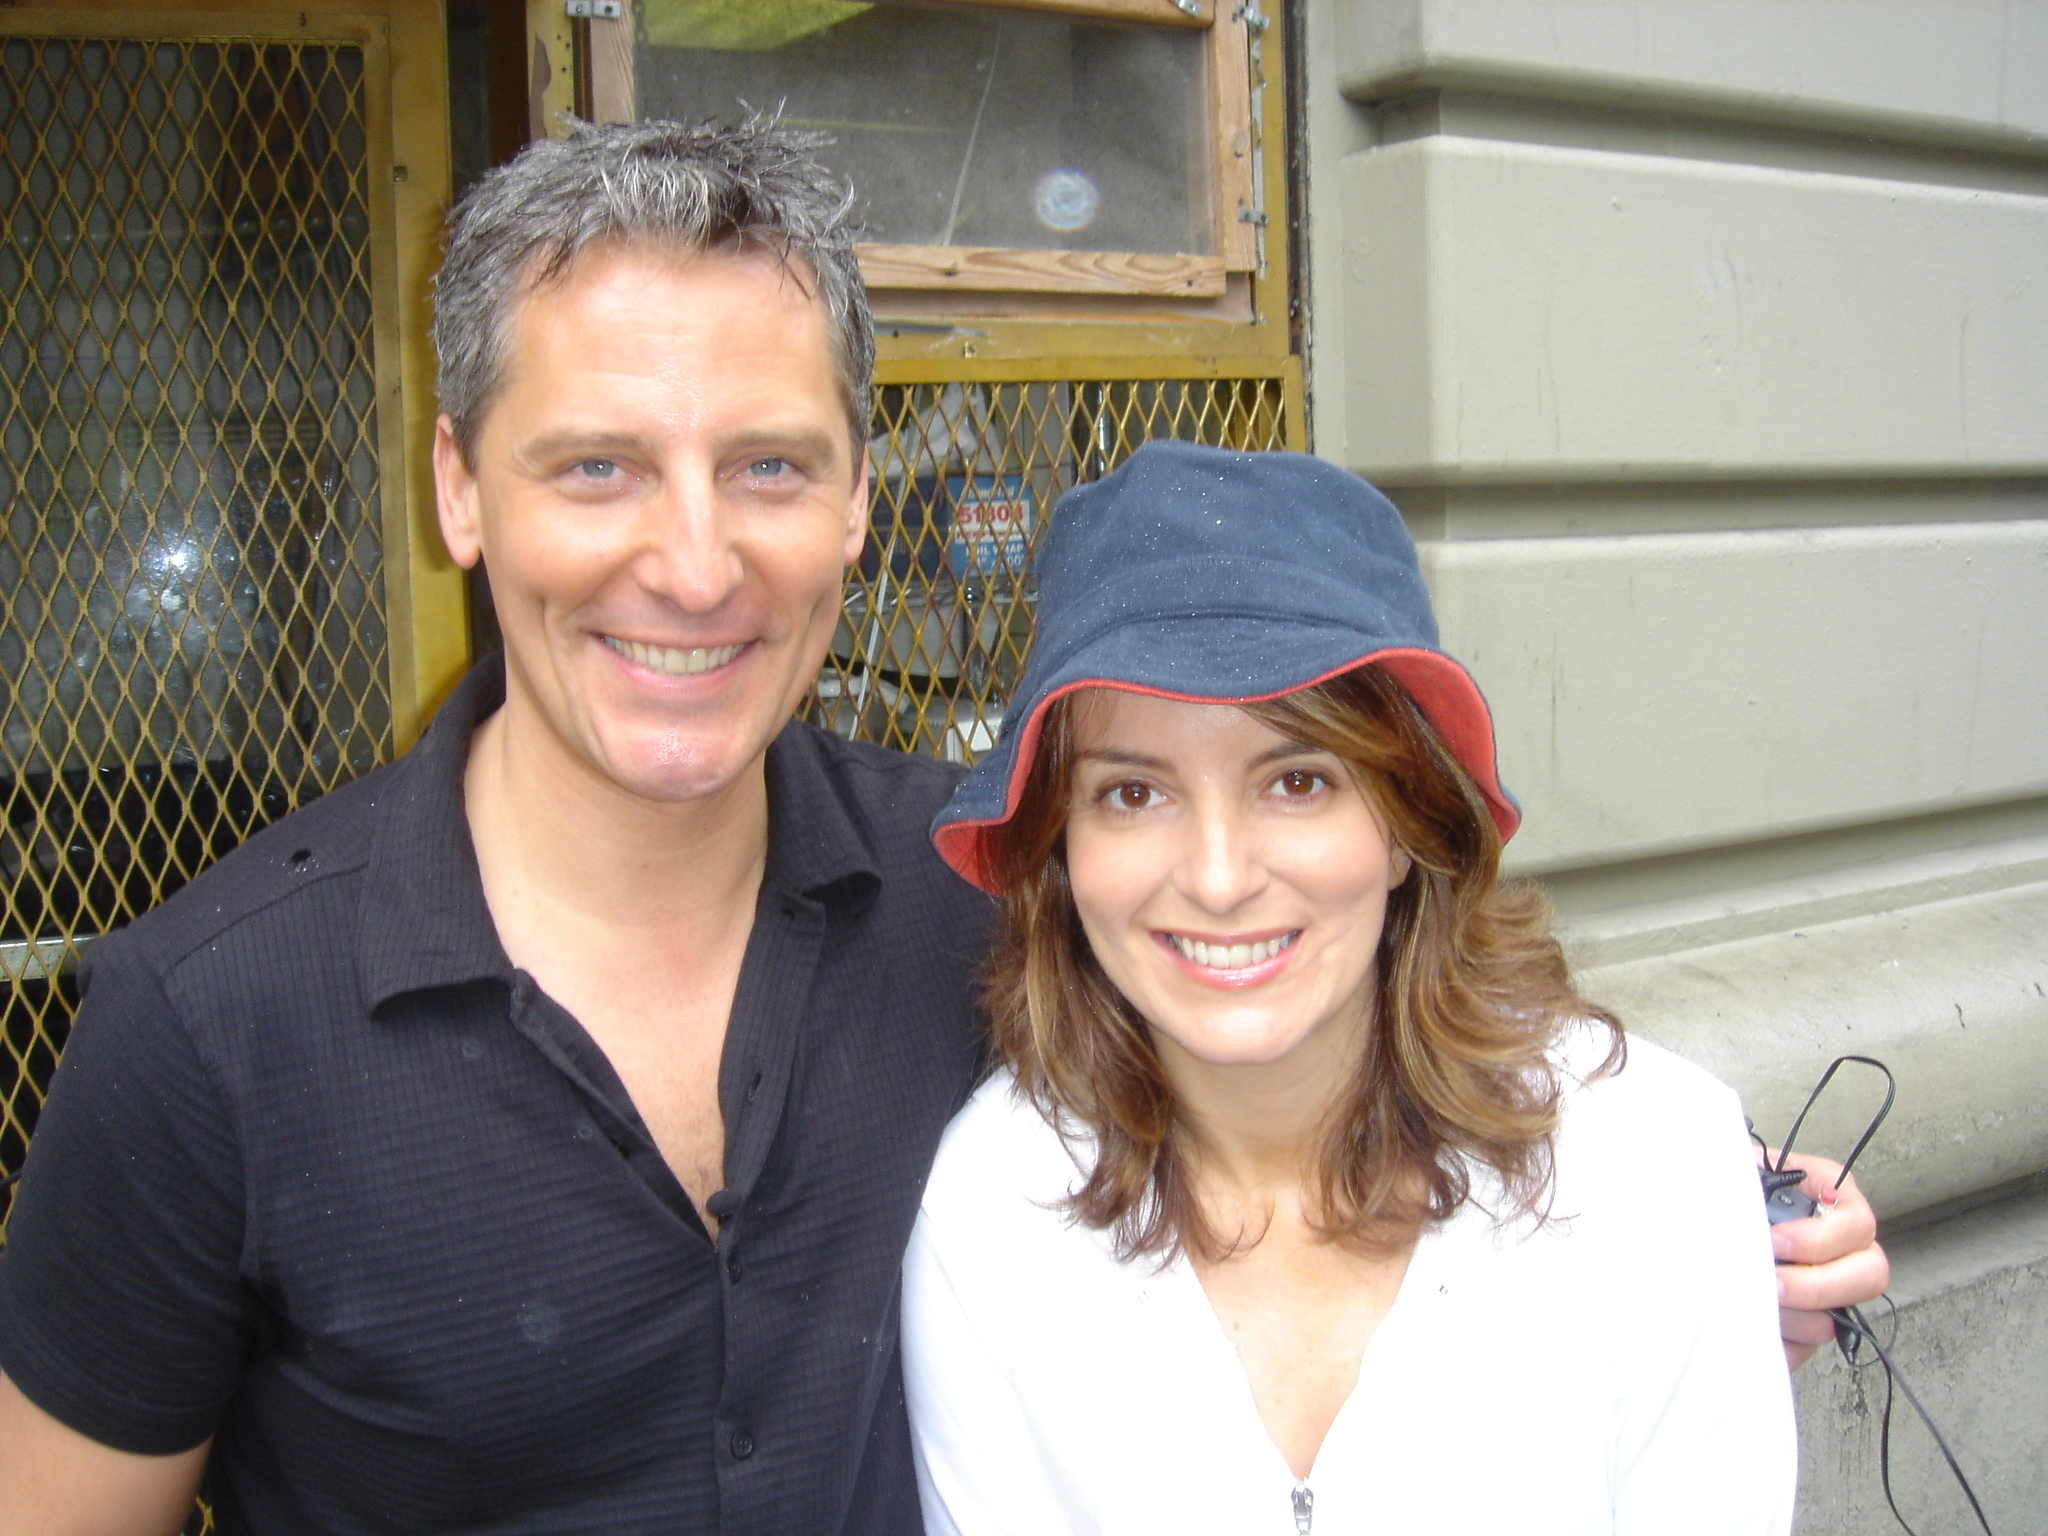 Doug Wilson & Tina Fey - It's a celebrity and designerlebrity sighting. Ever wonder is the designers of Trading Spaces get recognized by celebrities or better yet, are celebrities fans of the show? Well you bet they are! In a recent call interview, Doug admits to being stopped on the streets of NY by the likes of Tina Fey and even Matt Damon.